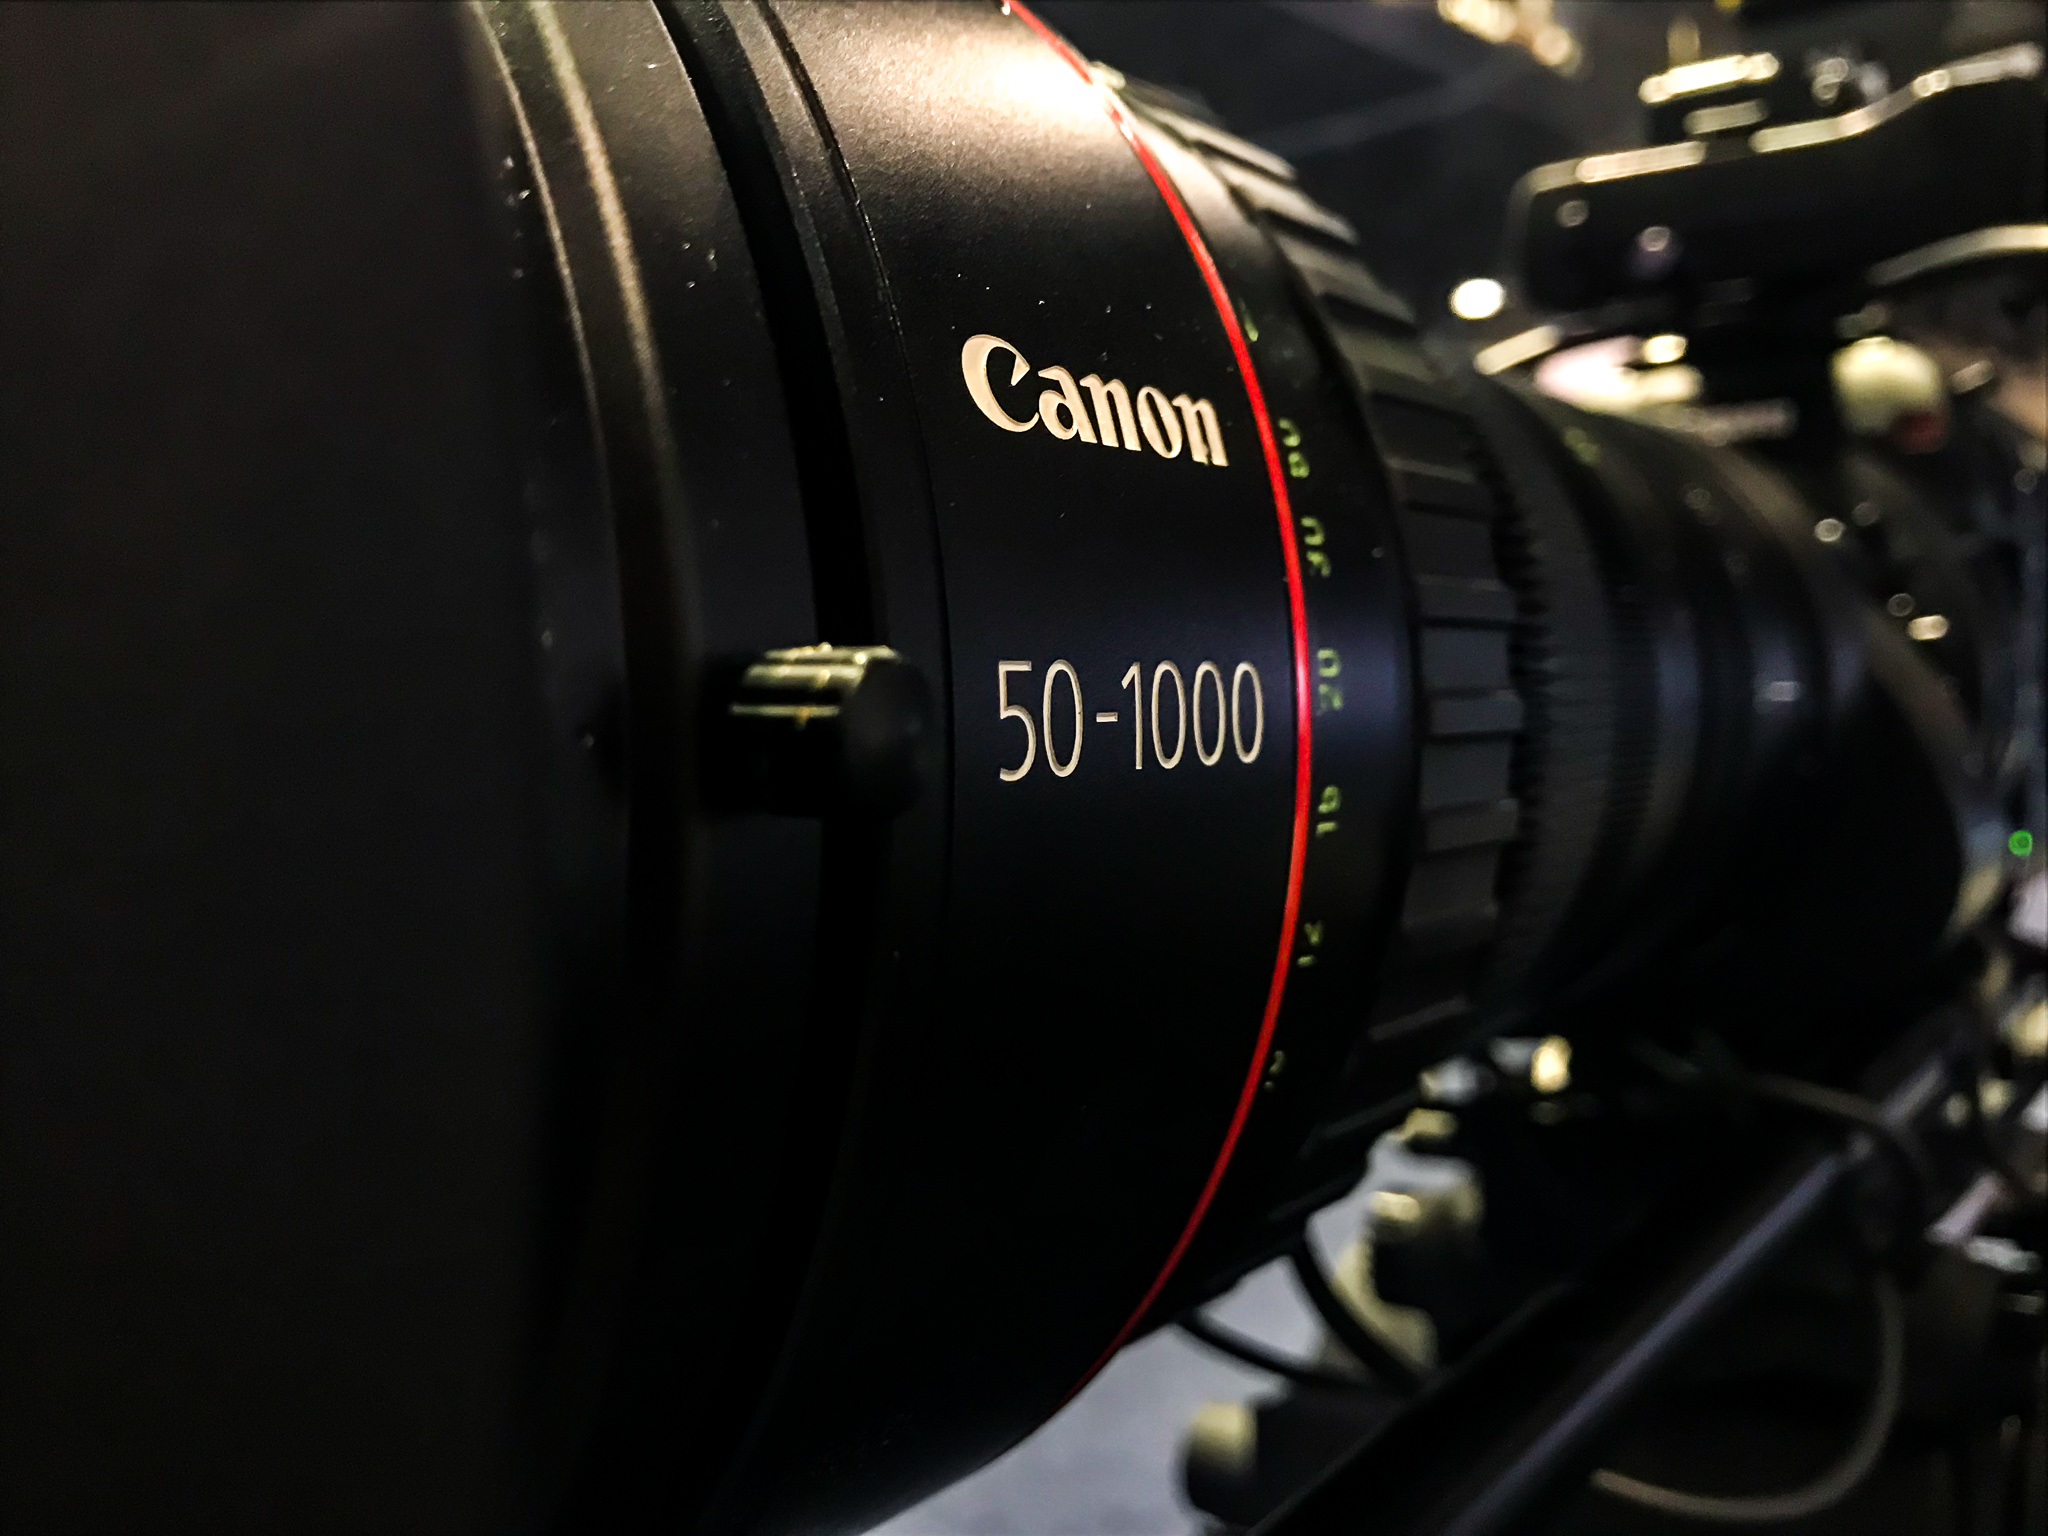 Canon was at the conference showing off some of their newest cameras.